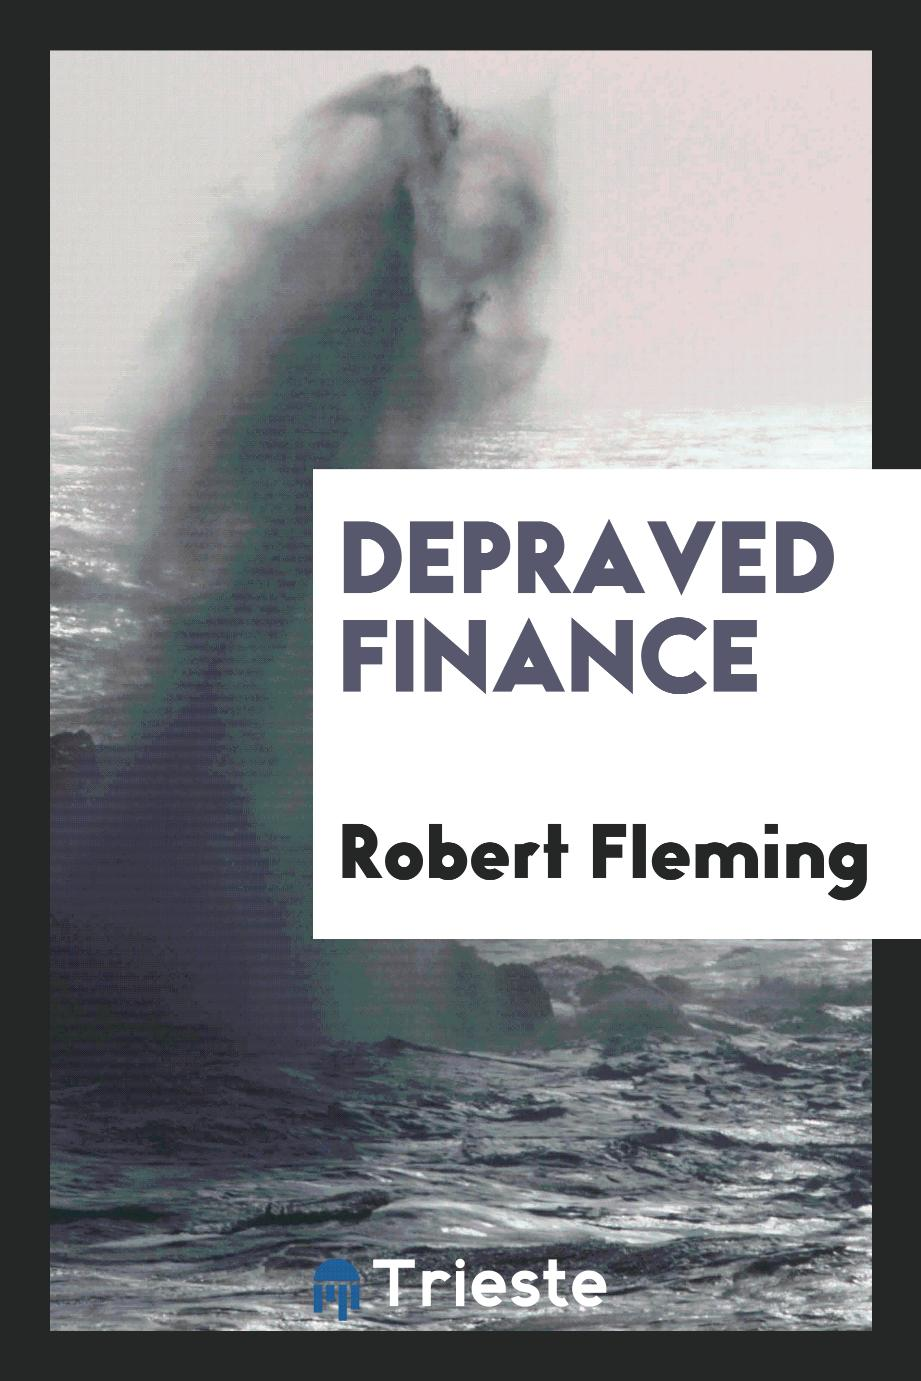 Robert Fleming - Depraved finance